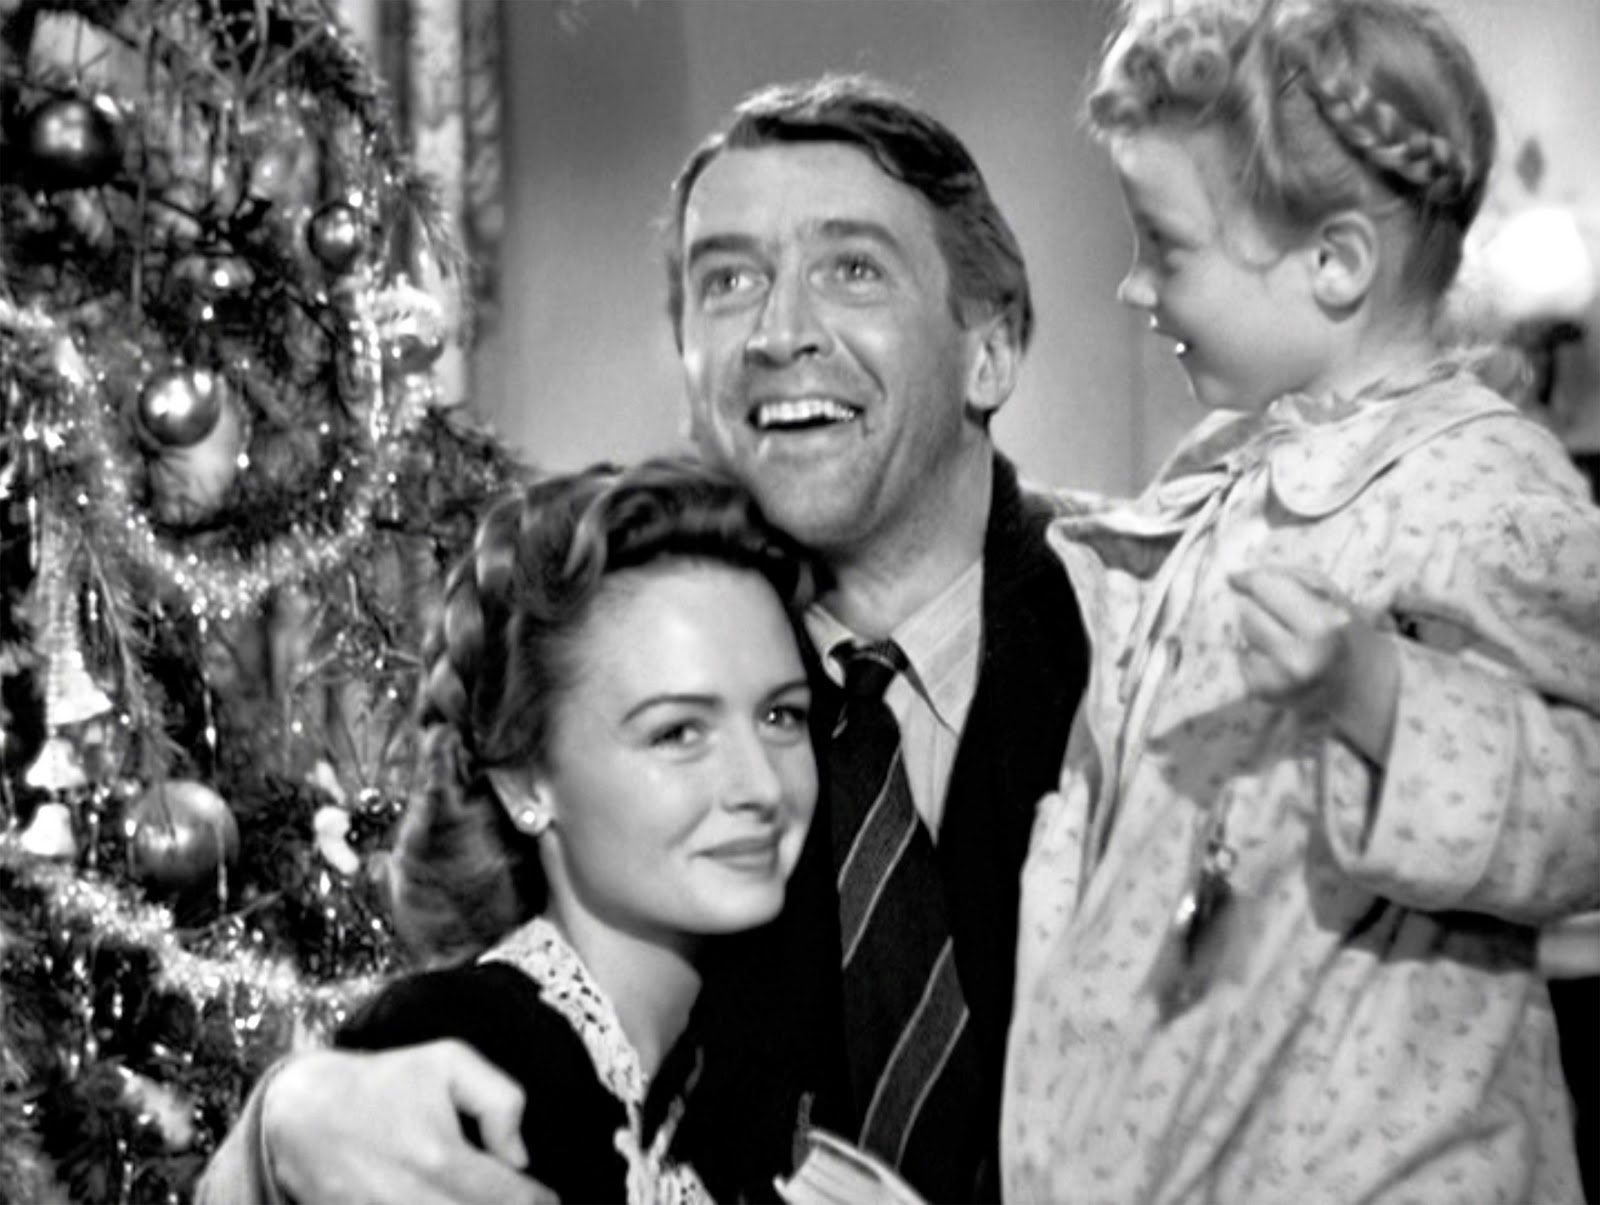 It's a Wonderful Life deals with suicide at Christmas time.